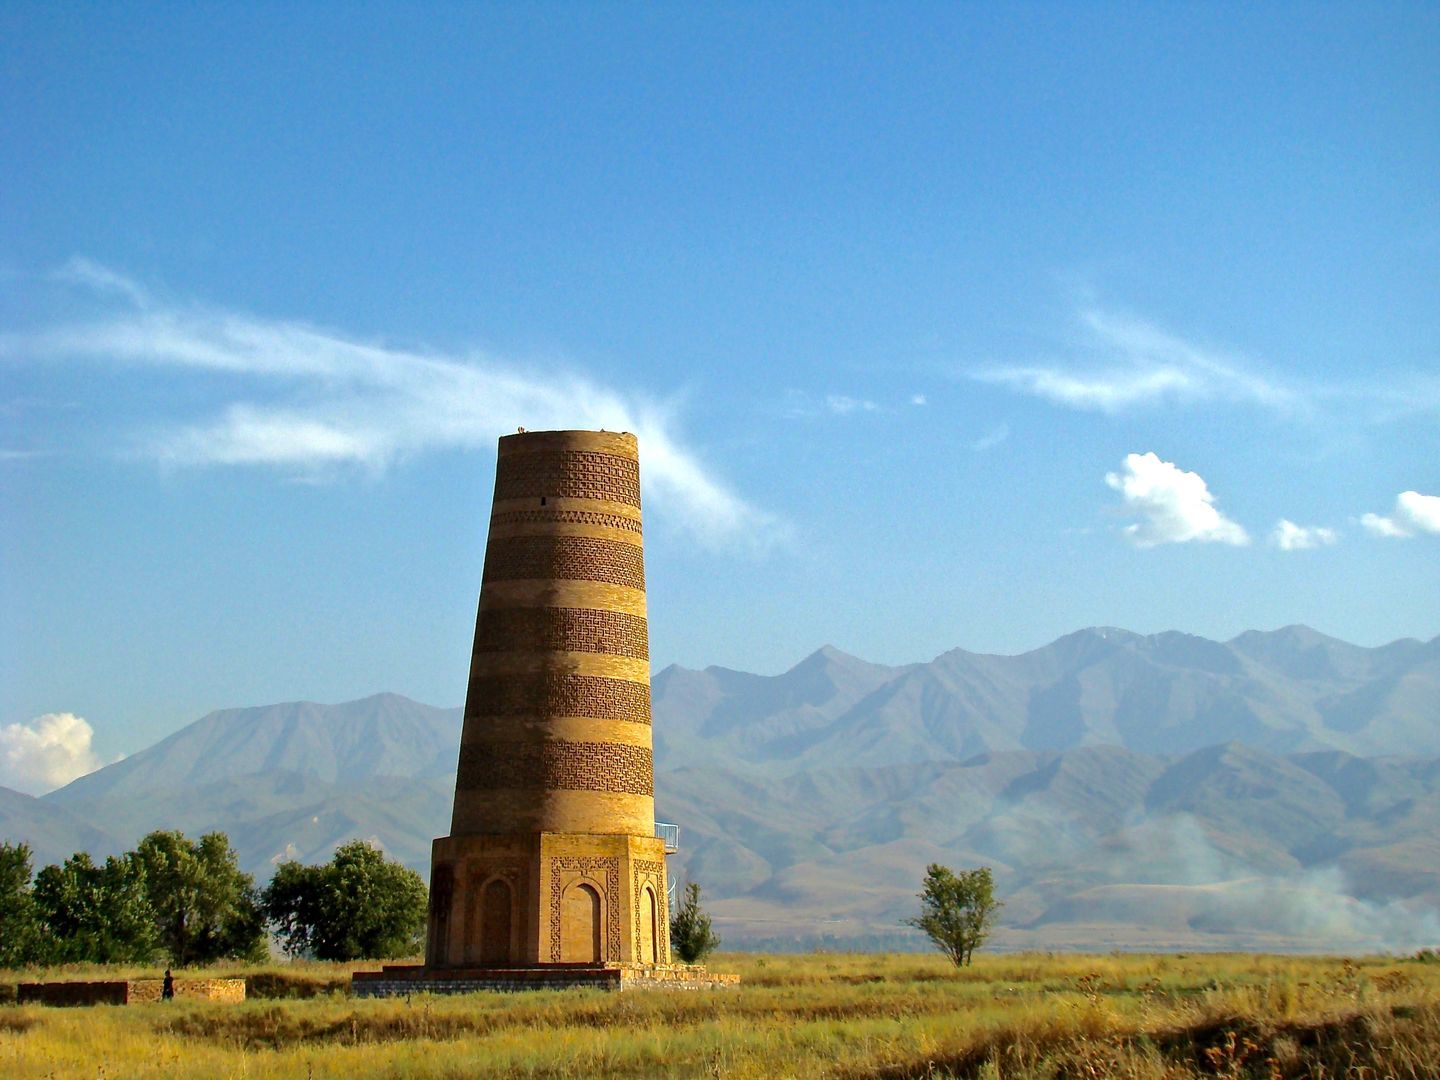 burana tower reflects history of kyrgyzstan- architectural monument